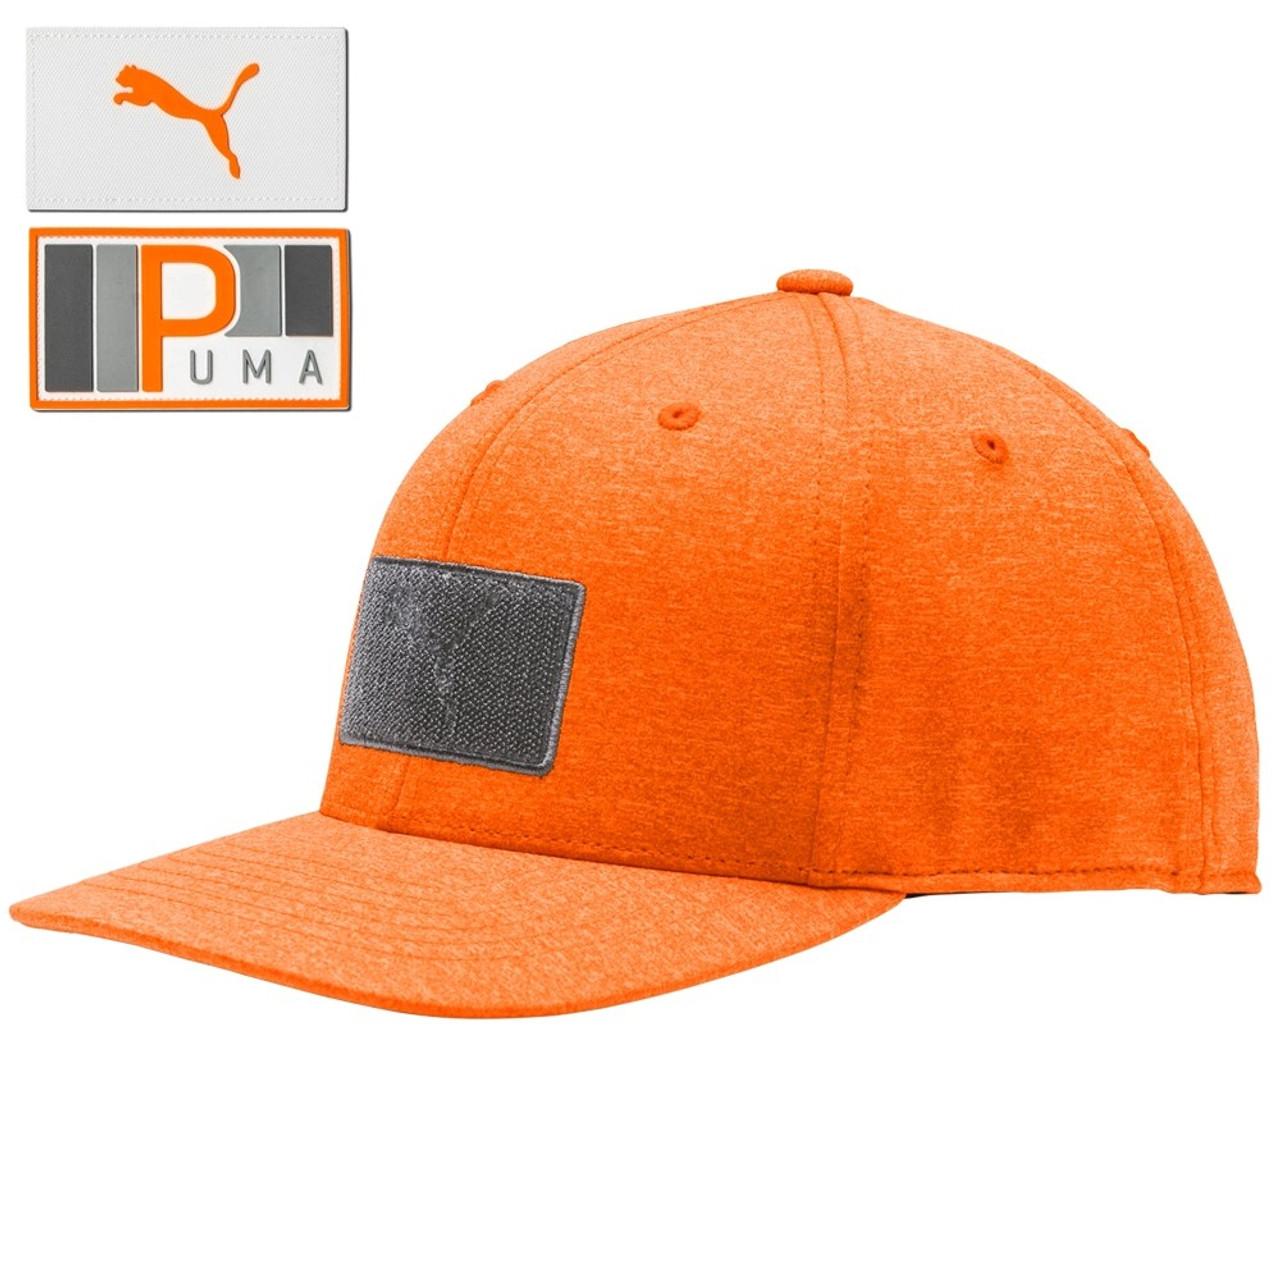 Puma Utility Patch 110 Snapback Cap - Vibrant Orange